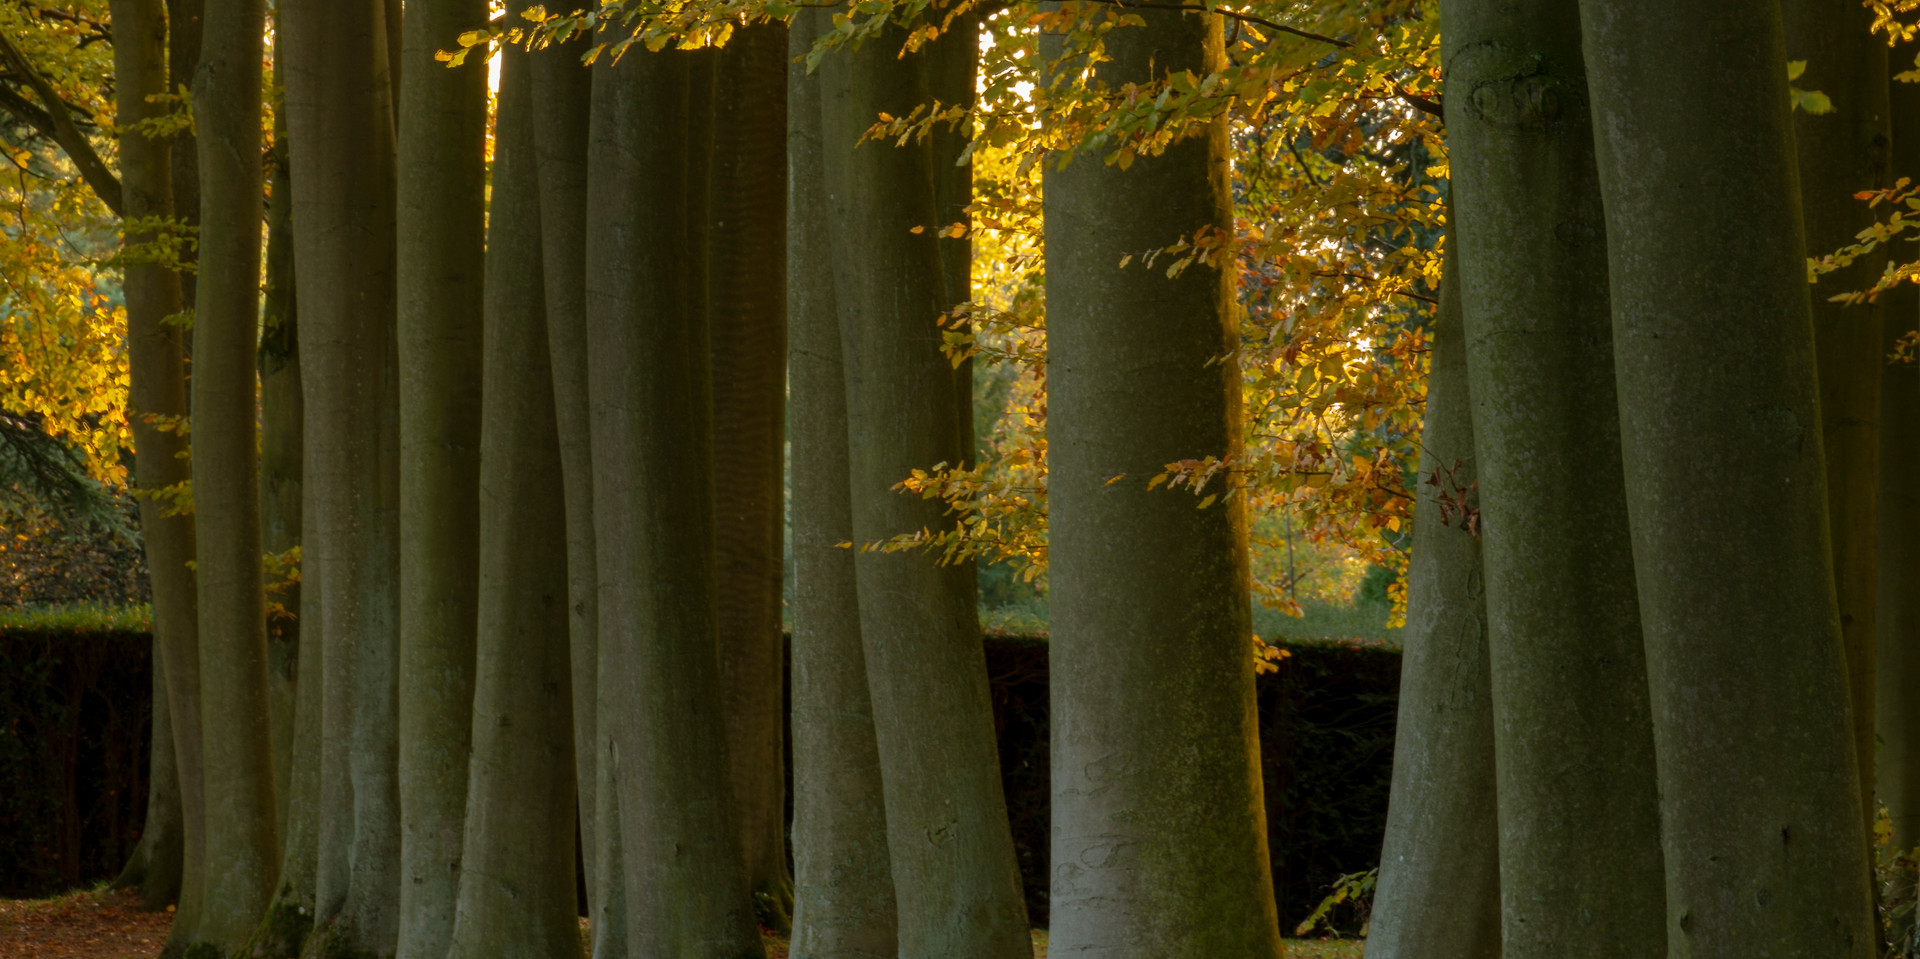 Cotswolds-Beech-Avenue-Nov18-WilliamGray